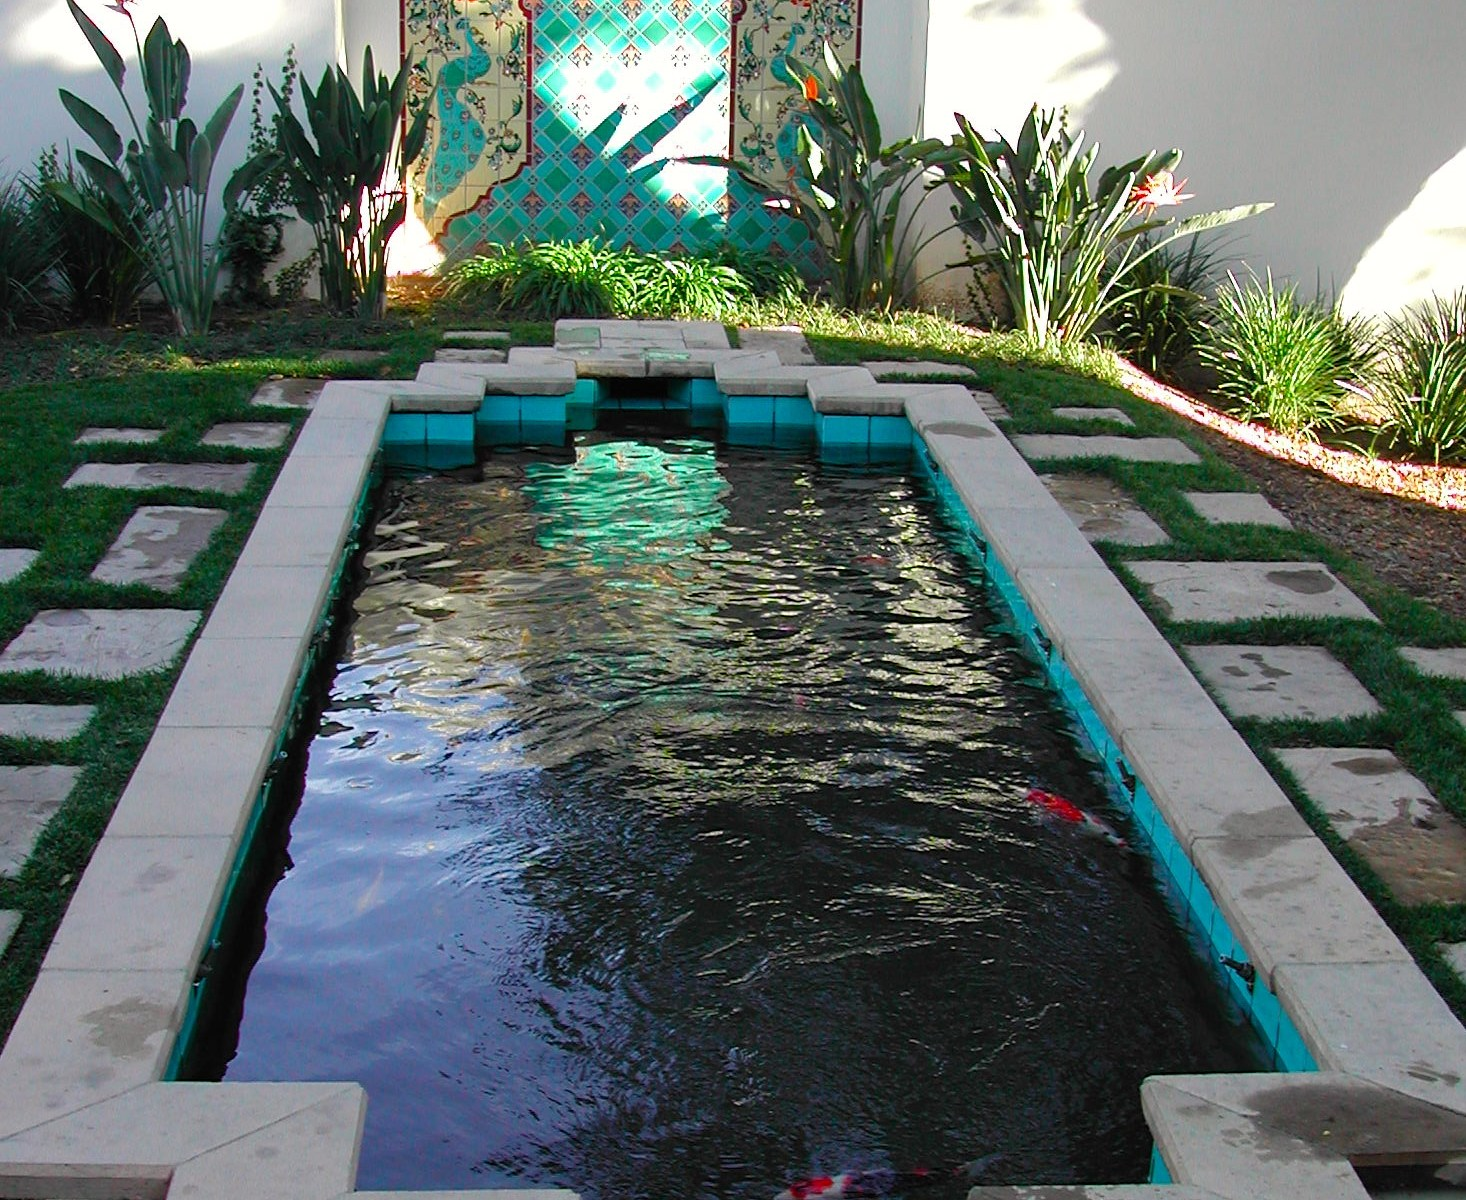 Professional koi pond construction and repair in pasadena for Koi pond maintenance service